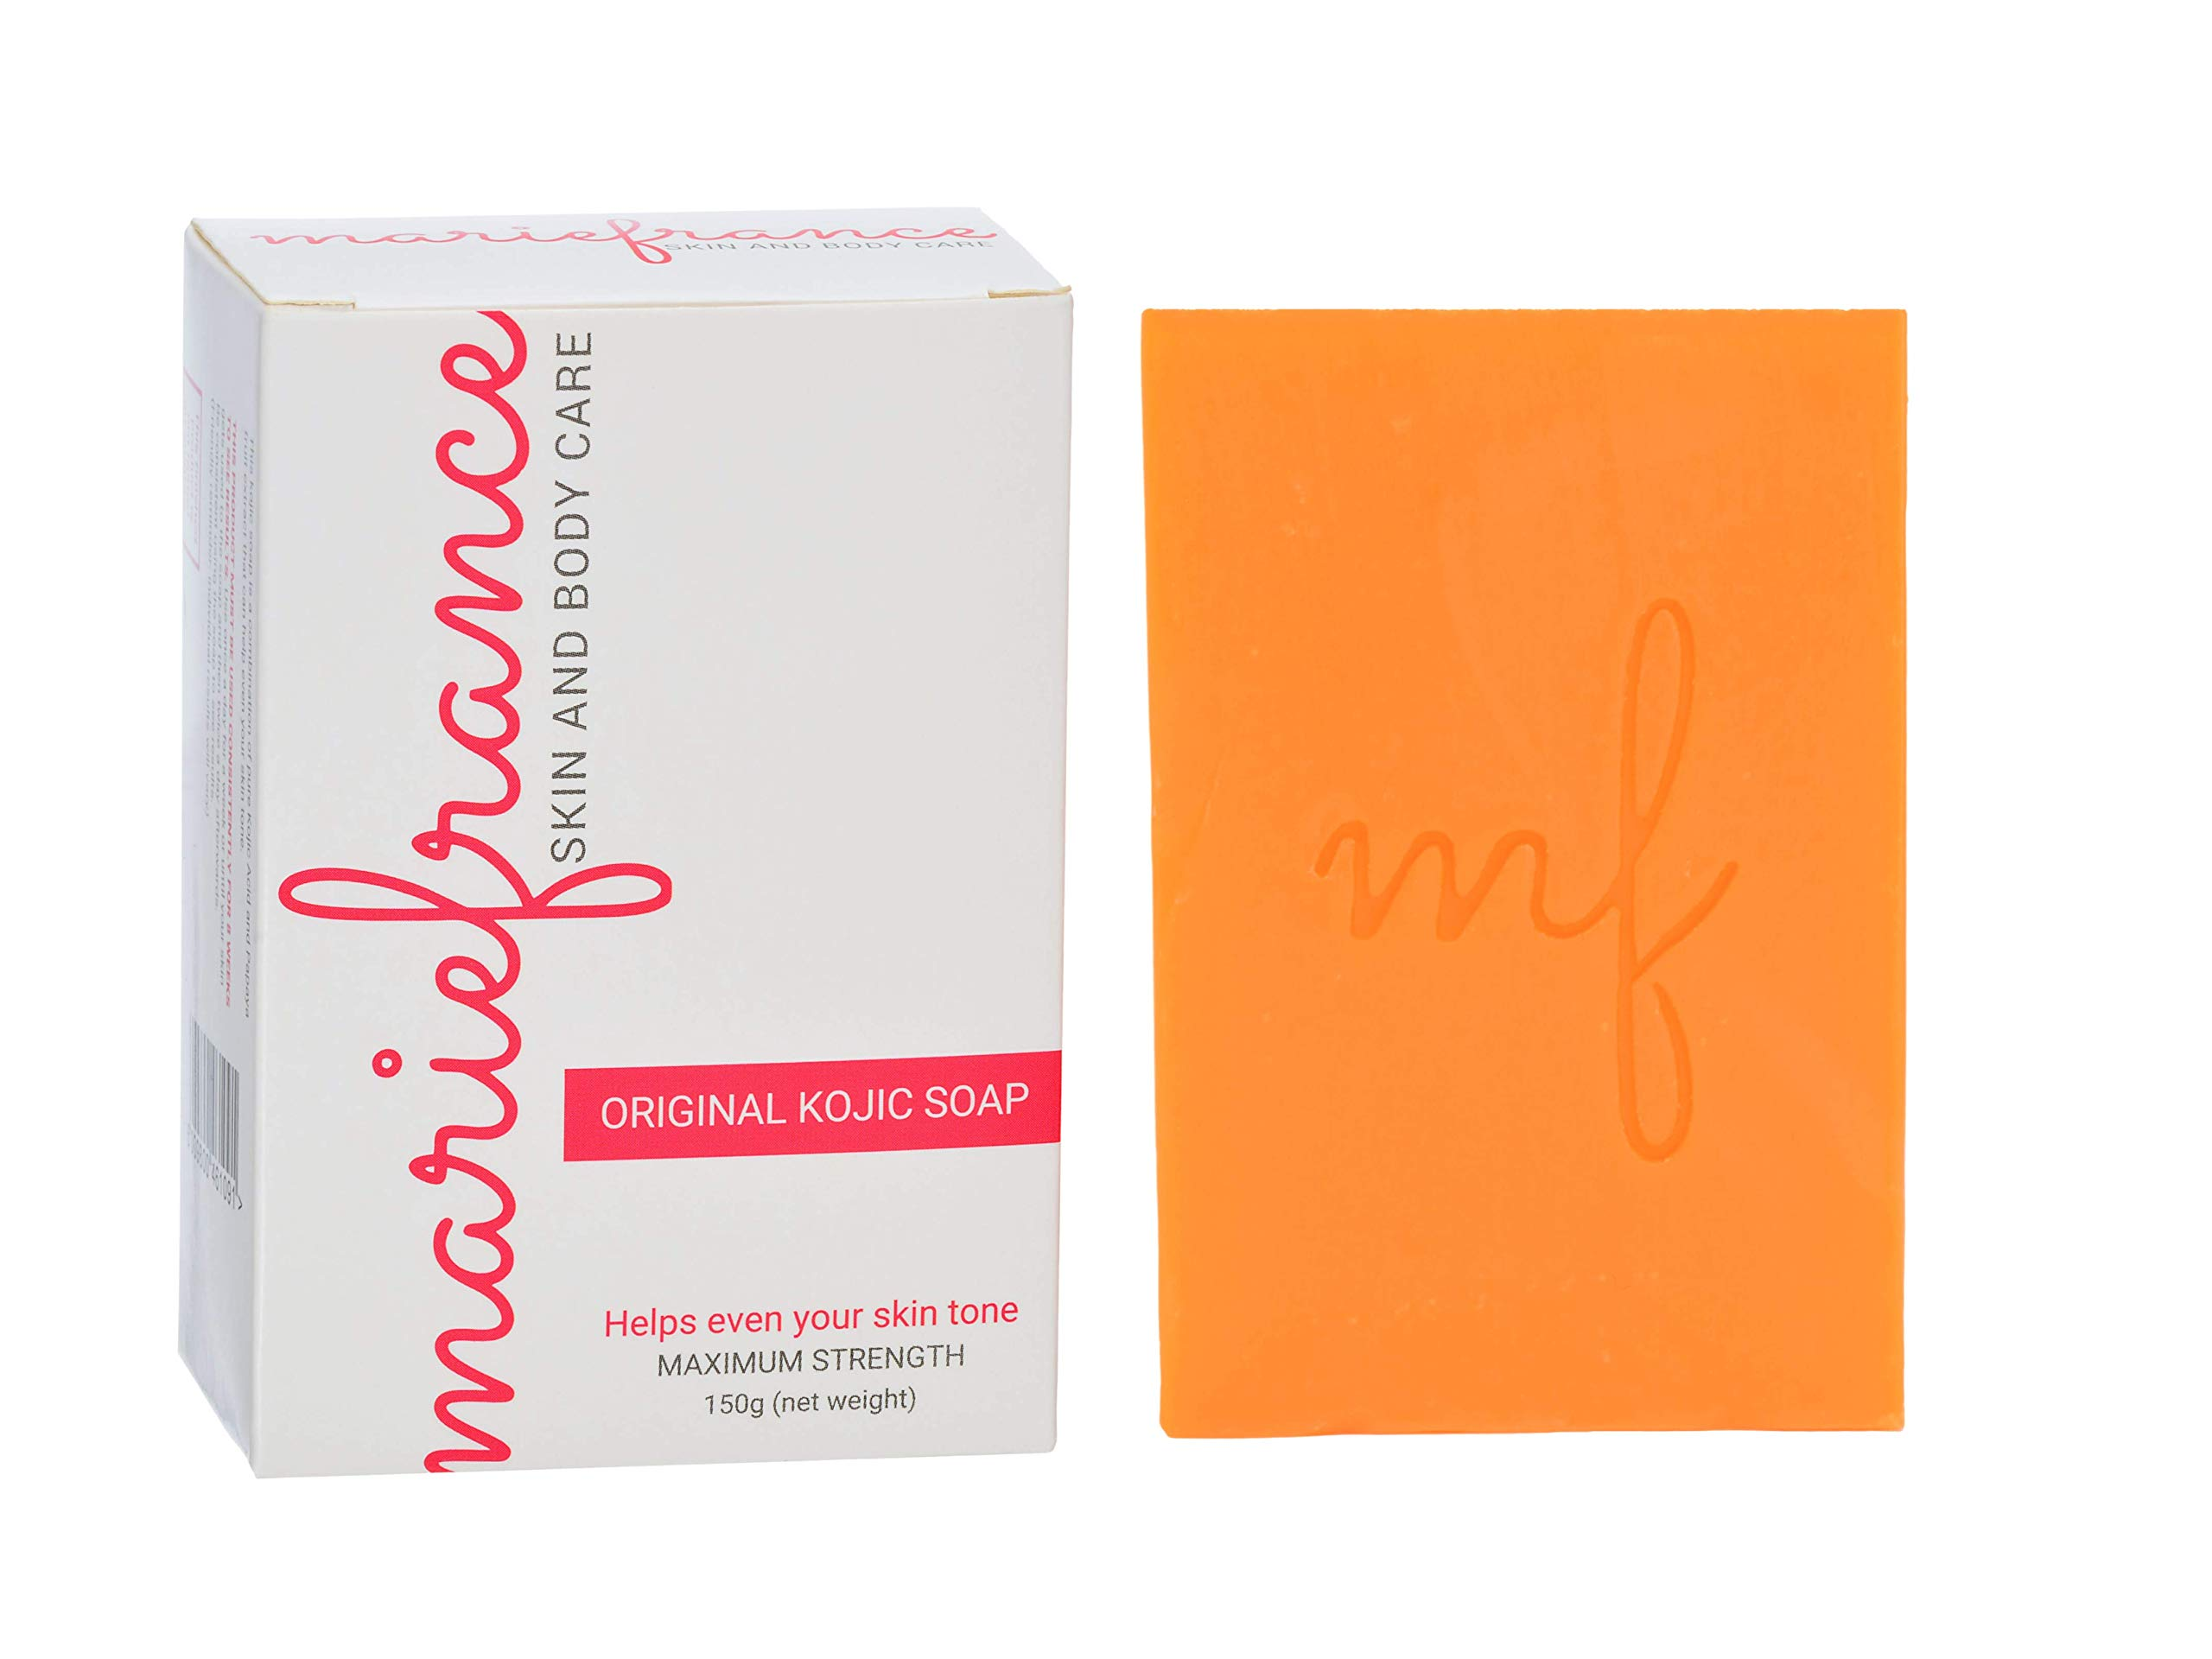 Pure Kojic Acid Soap (Maximum Strength) for Dark Spots & Hyperpigmentation, Helps Even Skin Tone (Not for Sensitive Skin)